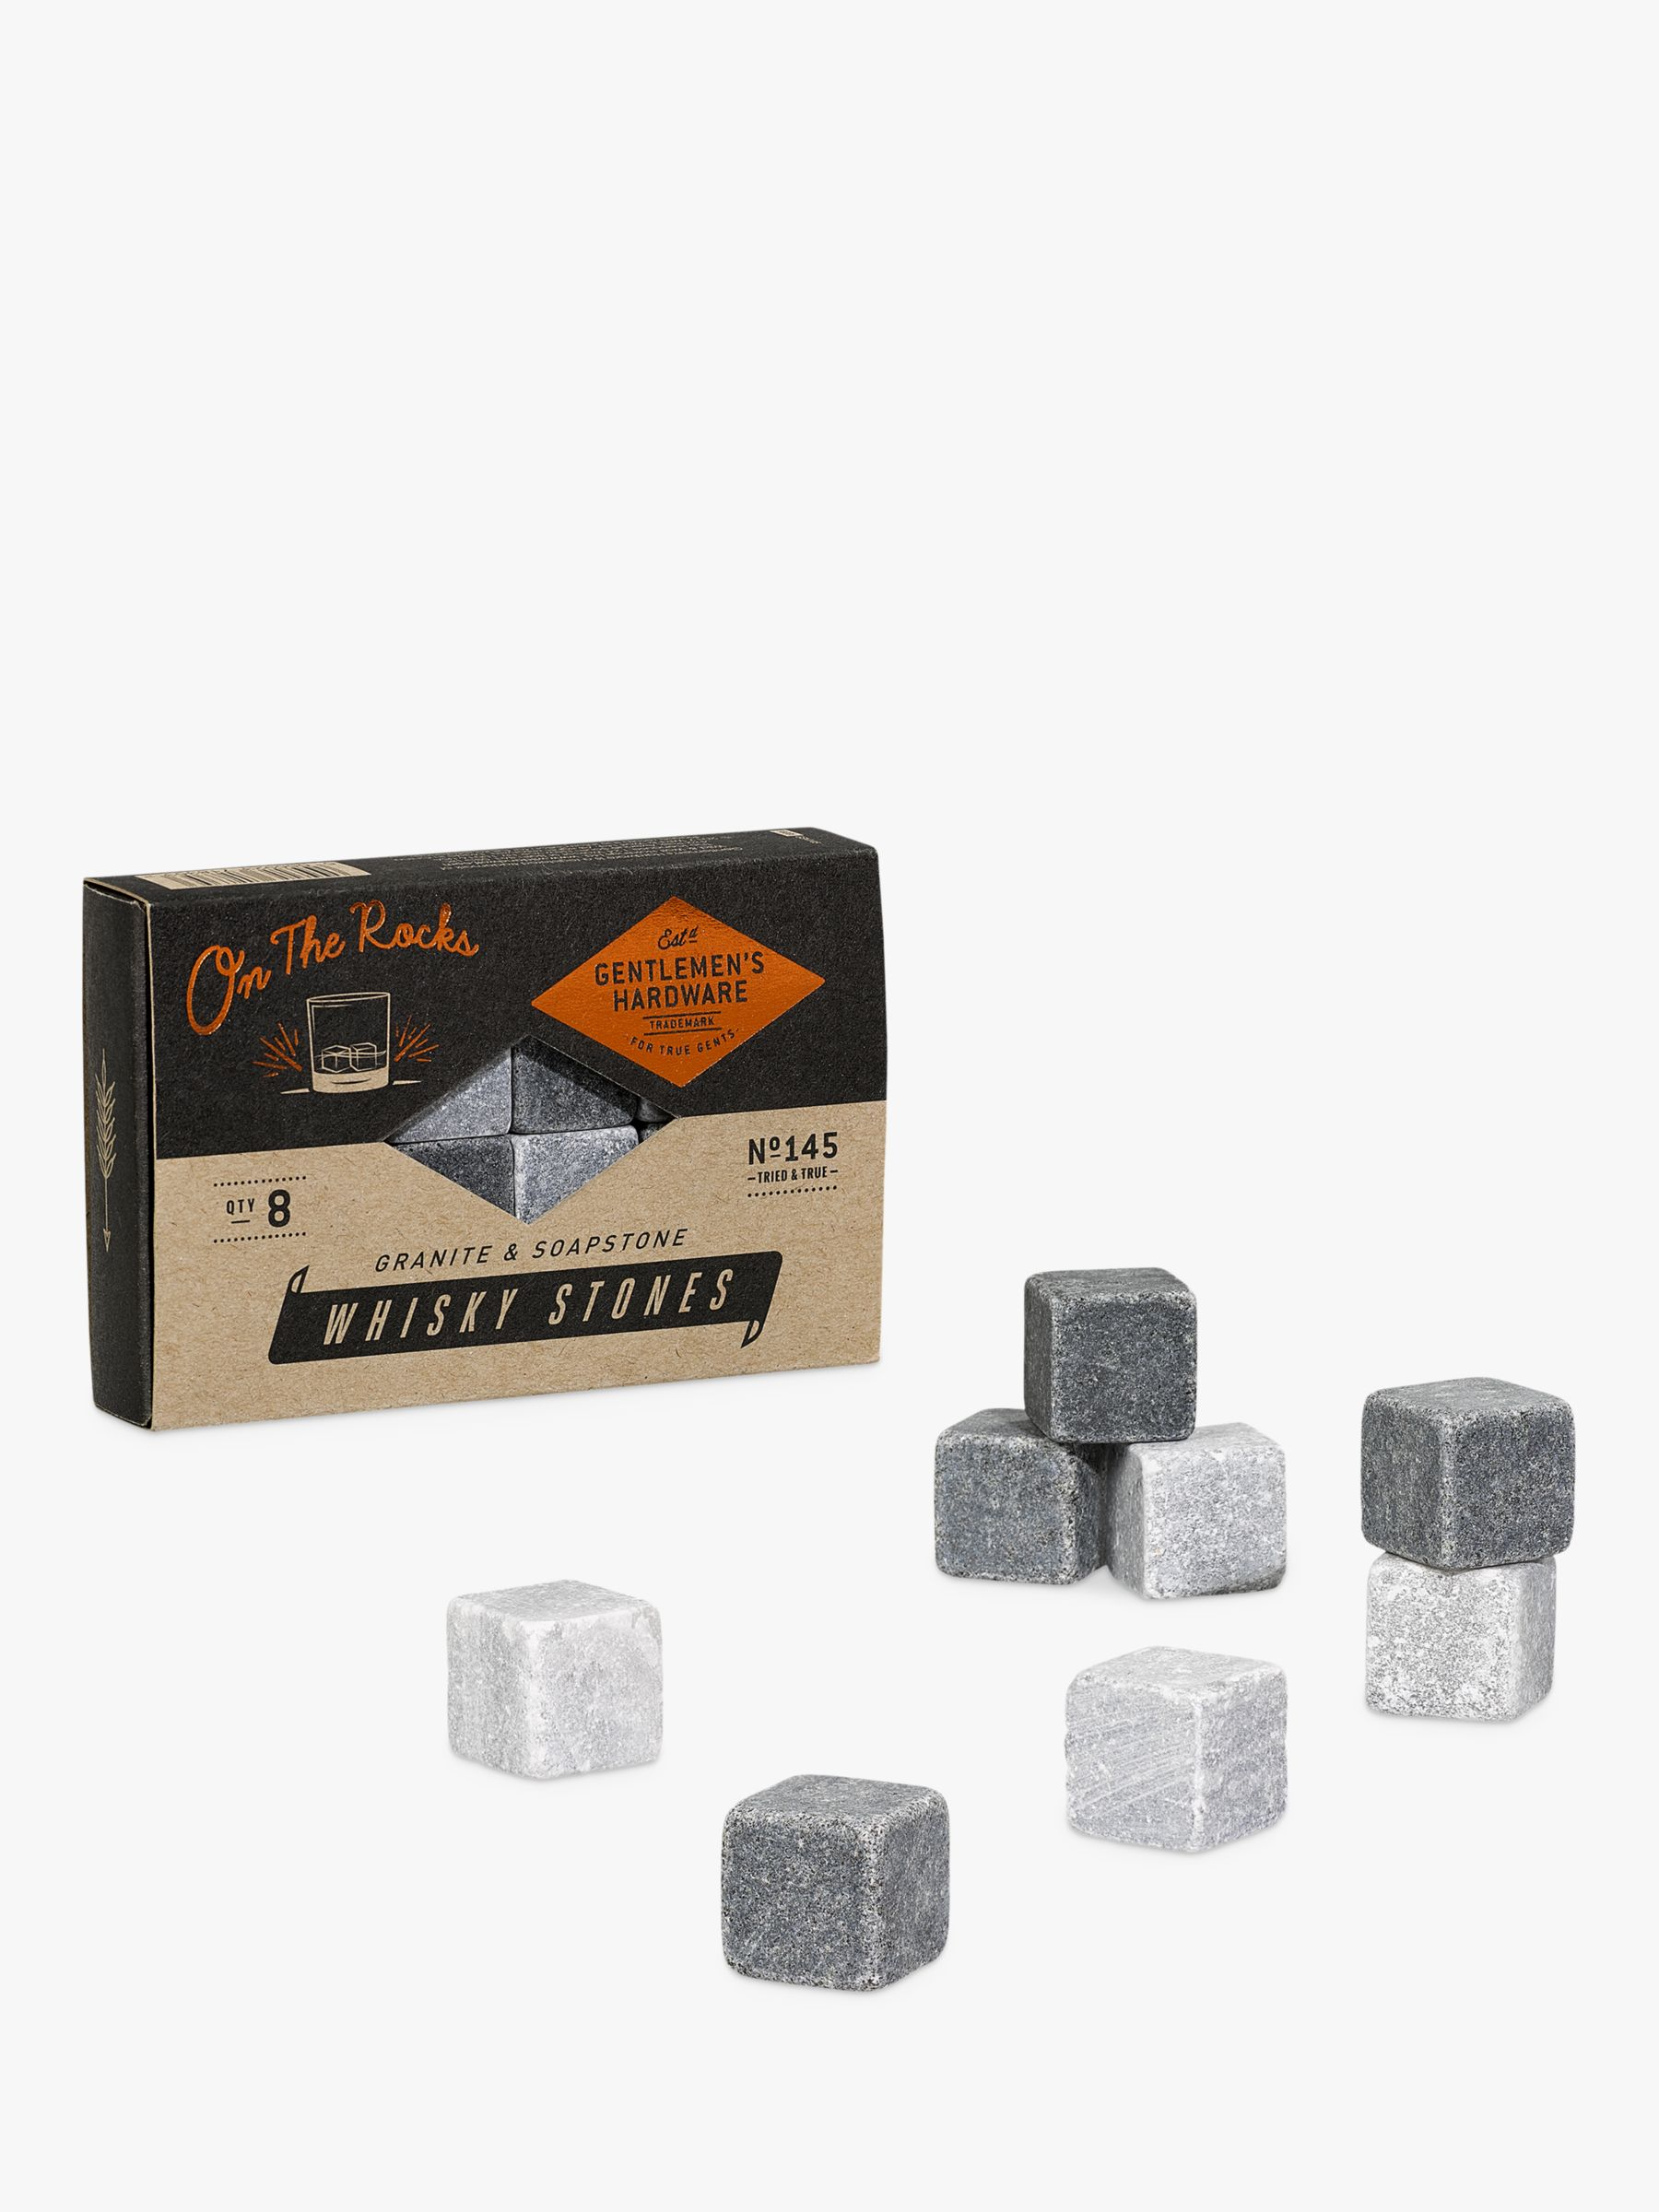 Gentlemen's Hardware Gentlemen's Hardware Whiskey Stones, Set of 8